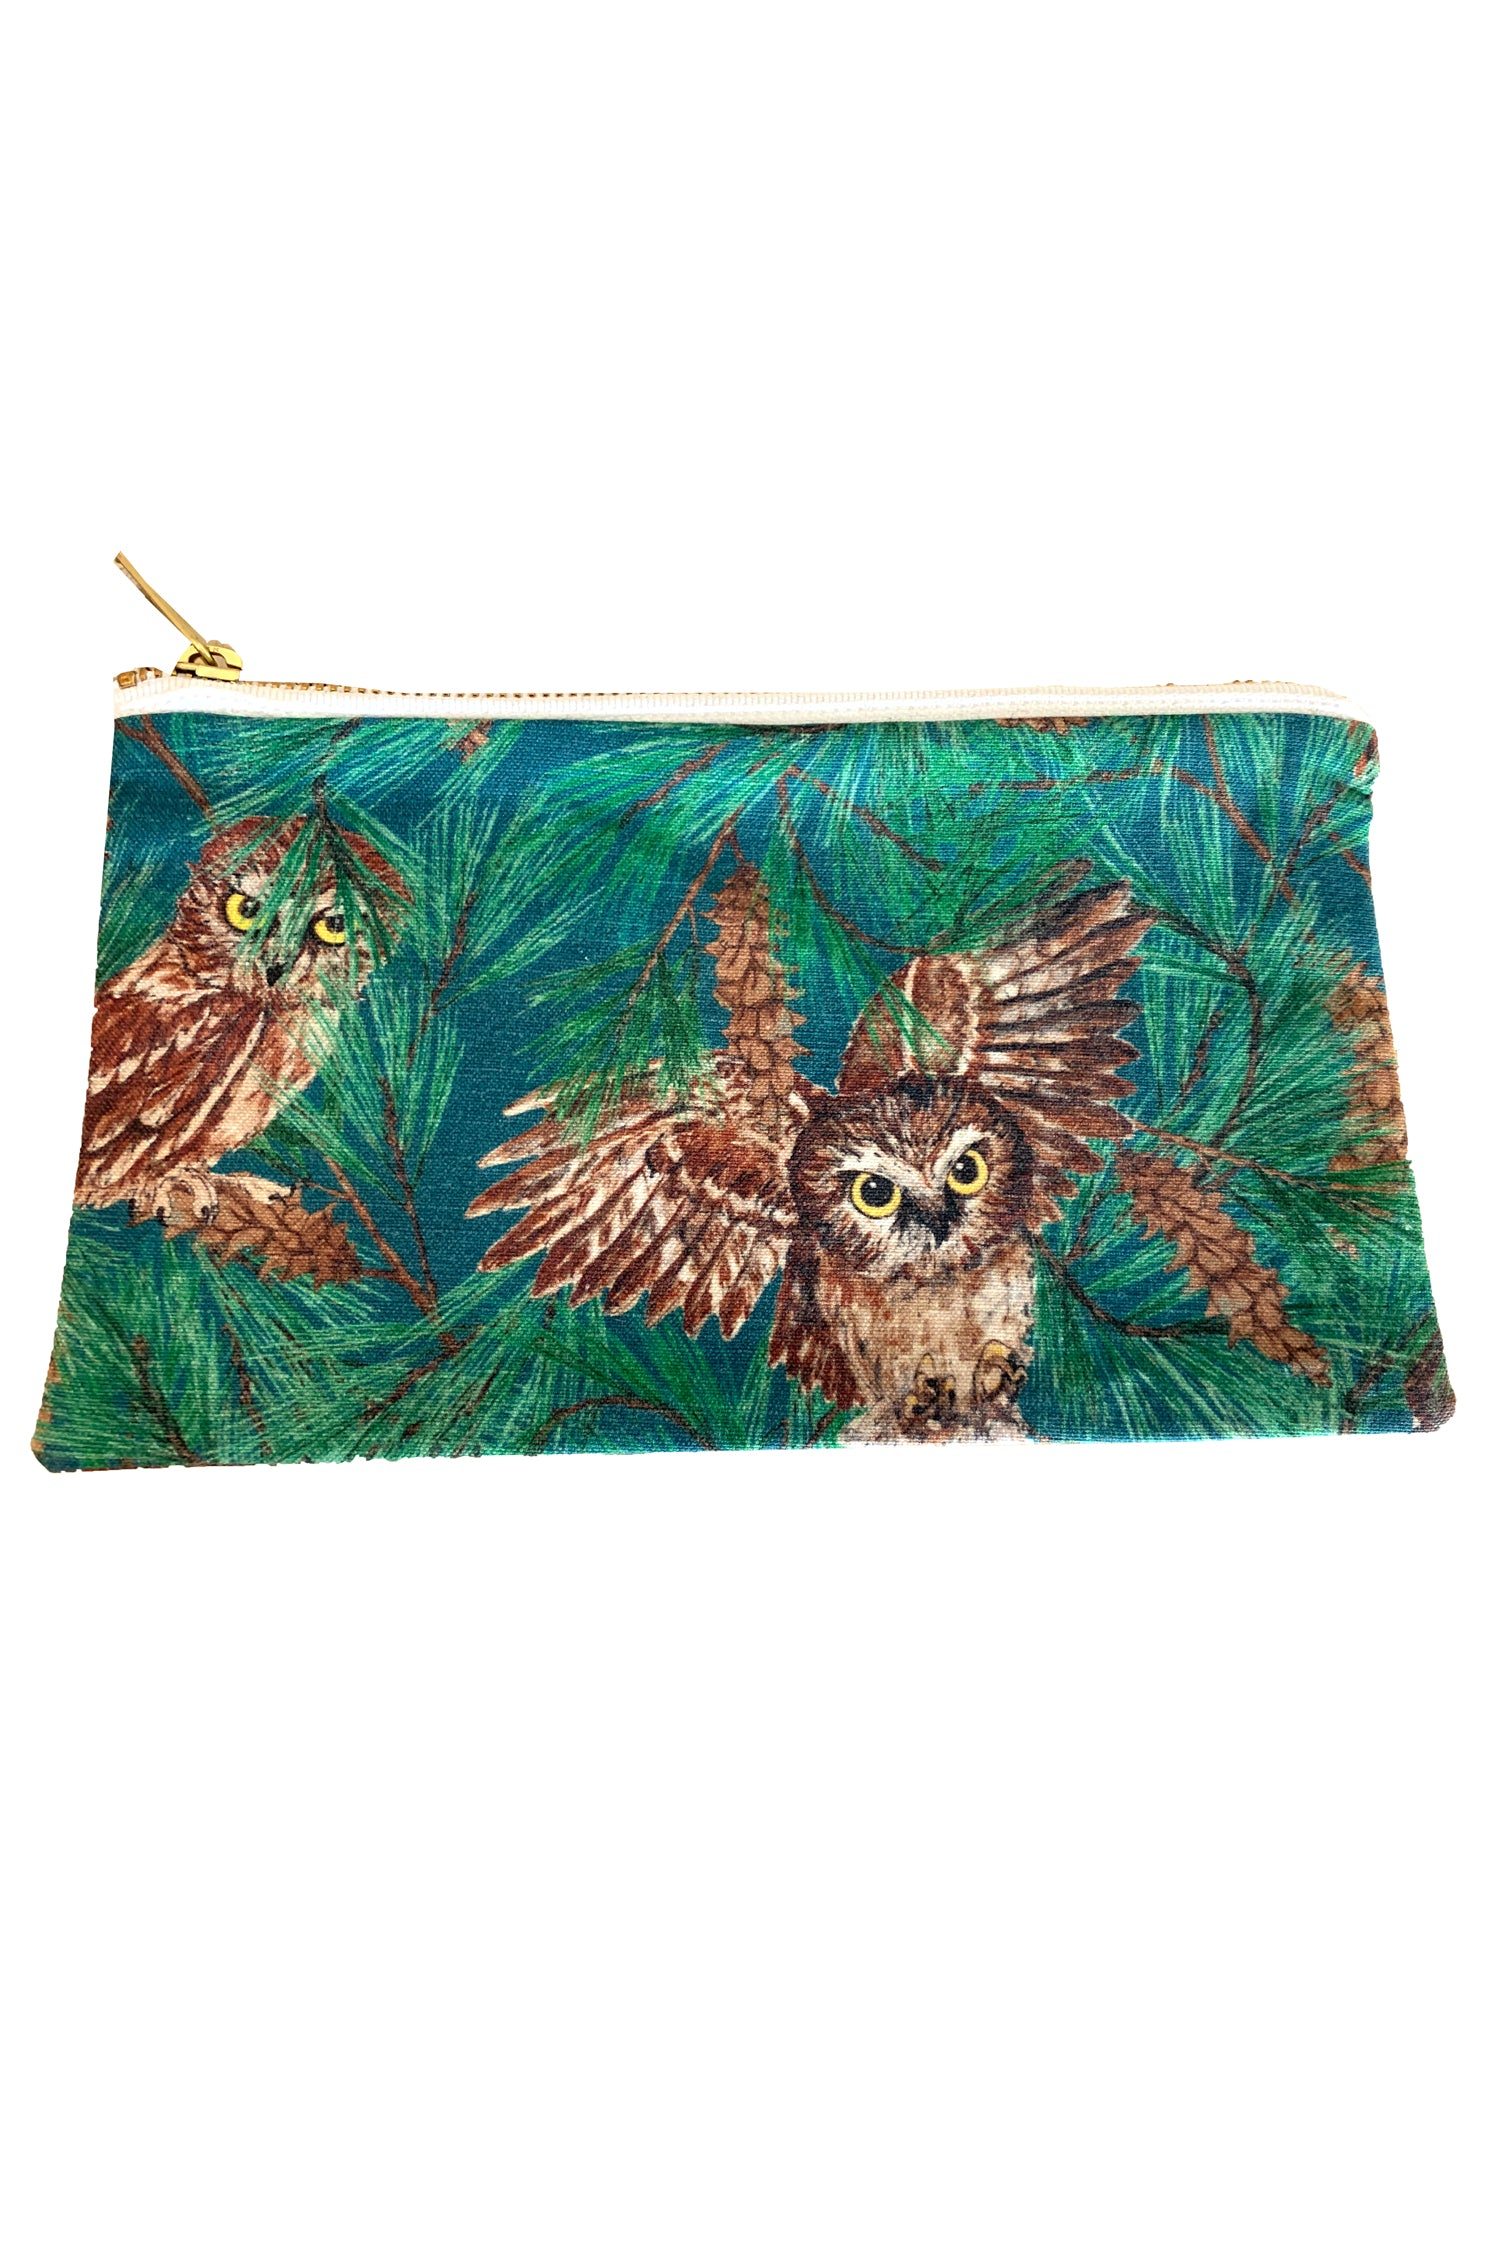 Gold and Ginger Pencil Case - 6 OPTIONS